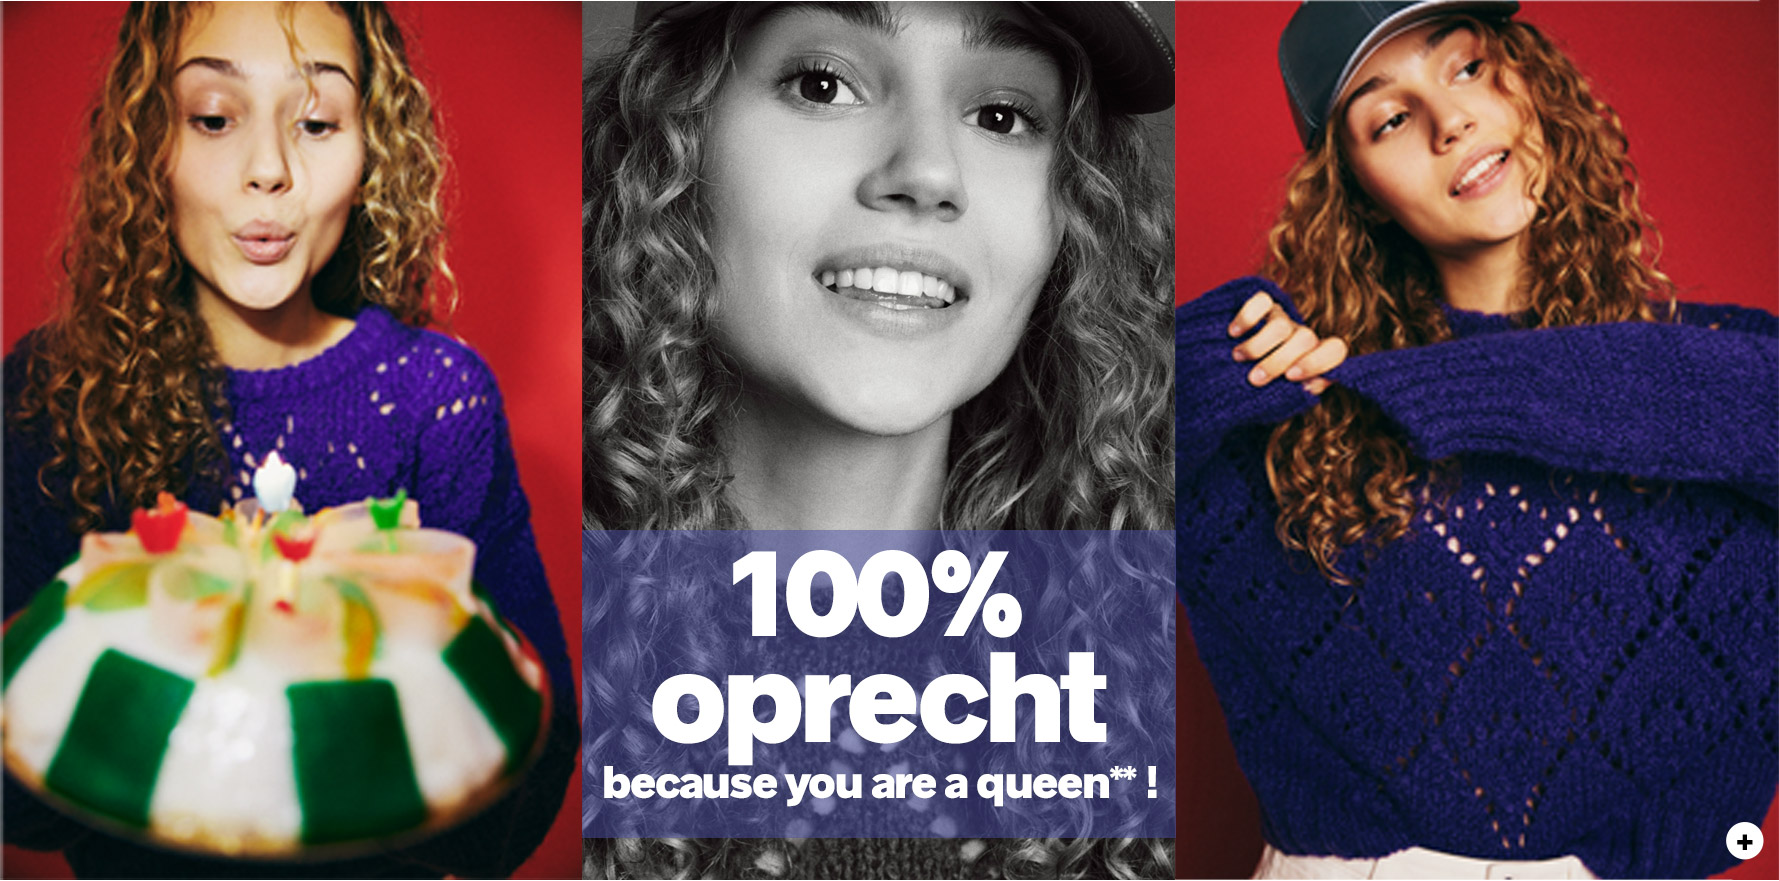 100% oprecht, because you are a queen !**